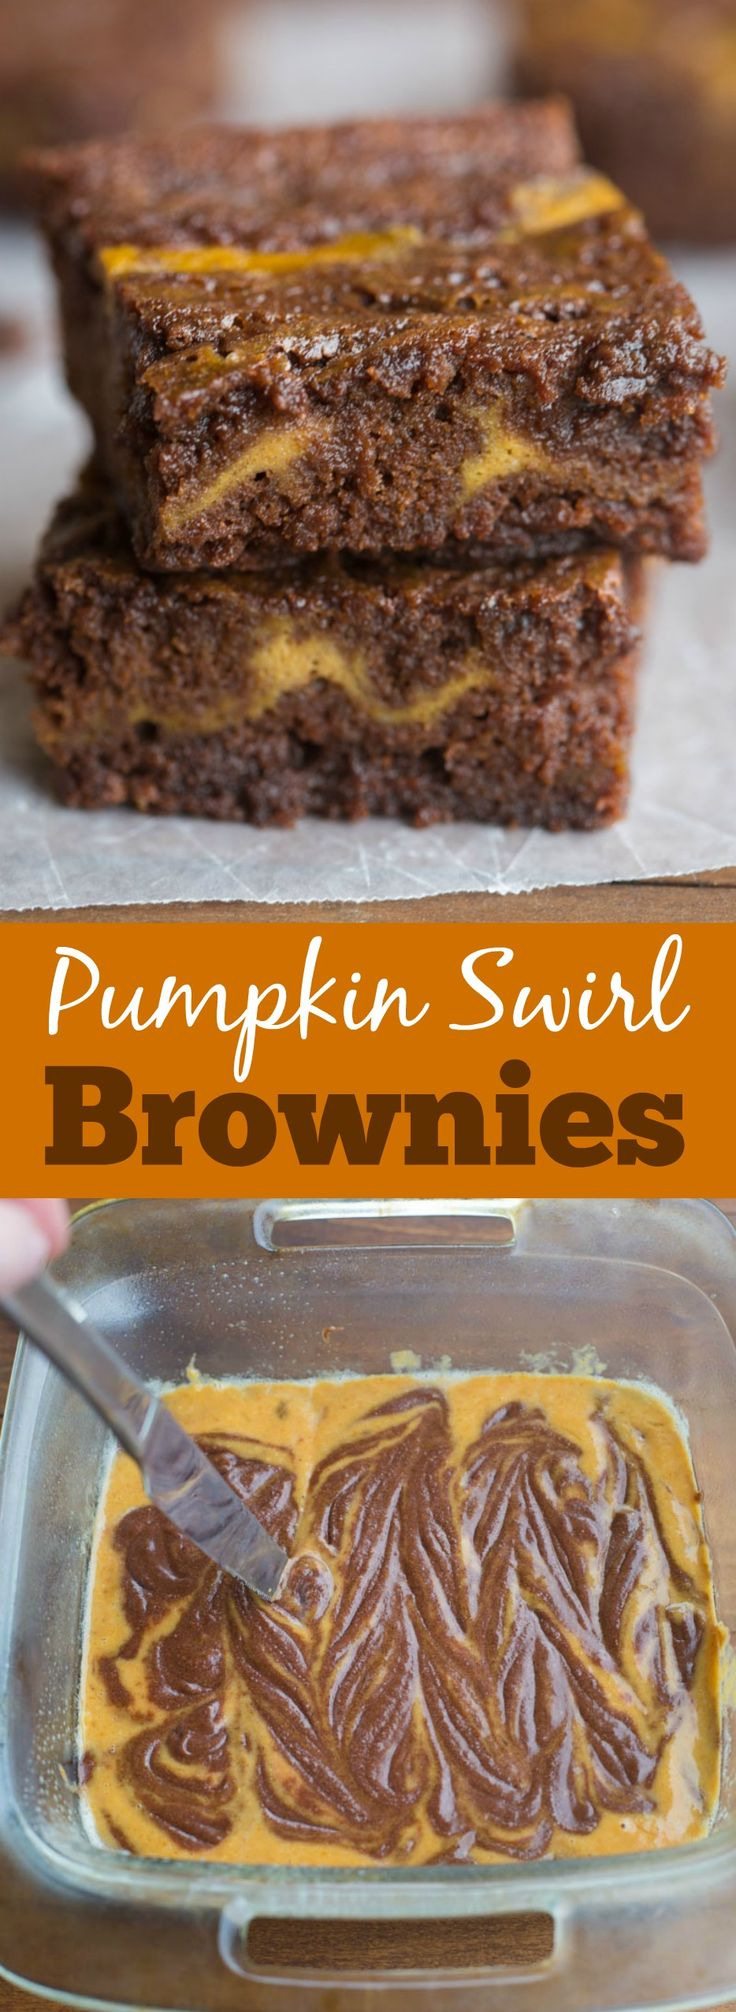 Thick, fudgey homemade brownies (better than a box mix!) with a pumpkin cinnamon…